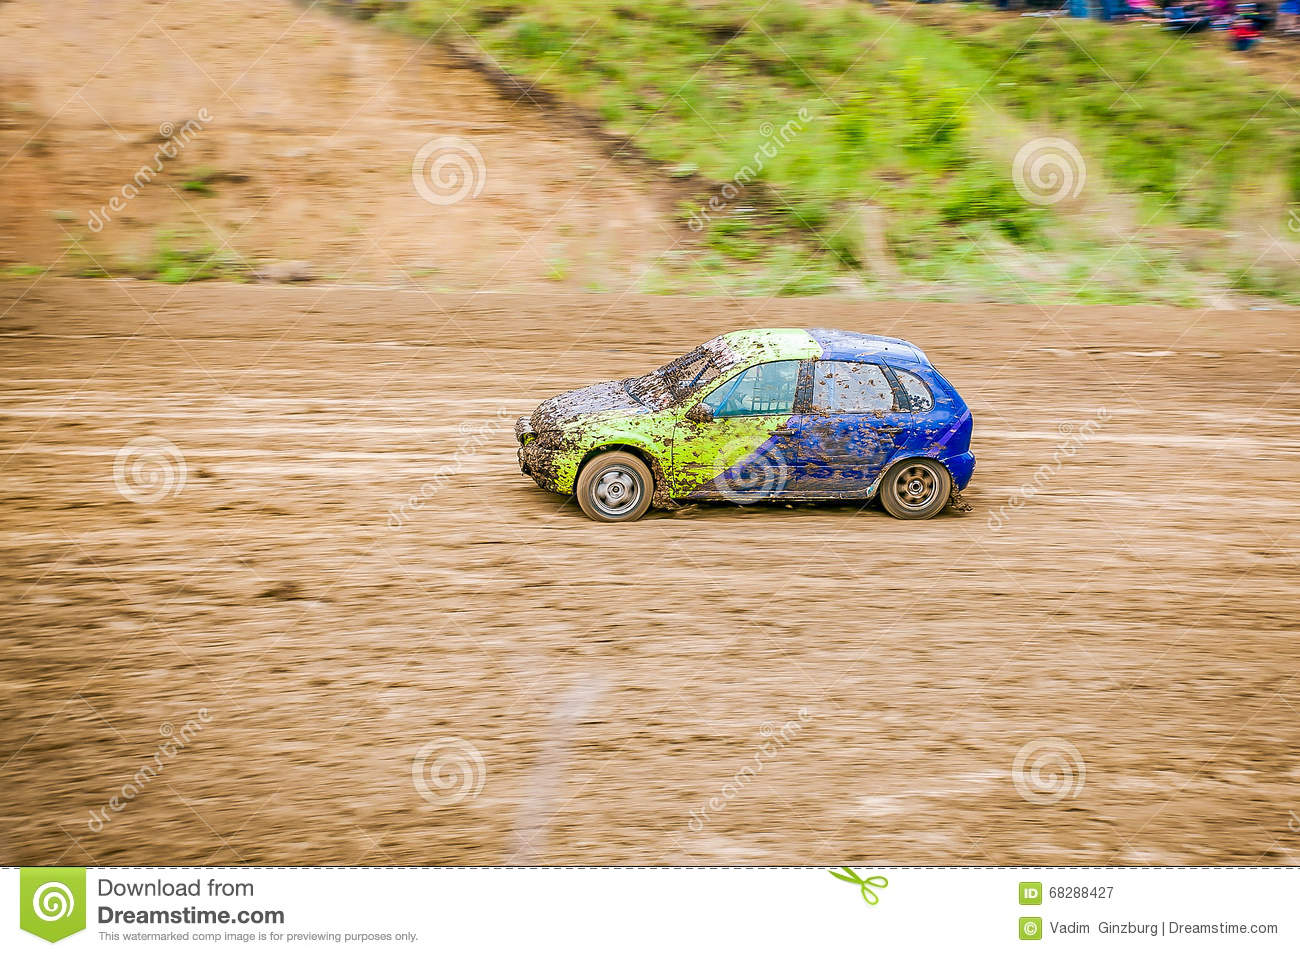 Rally car racing at the racetrack